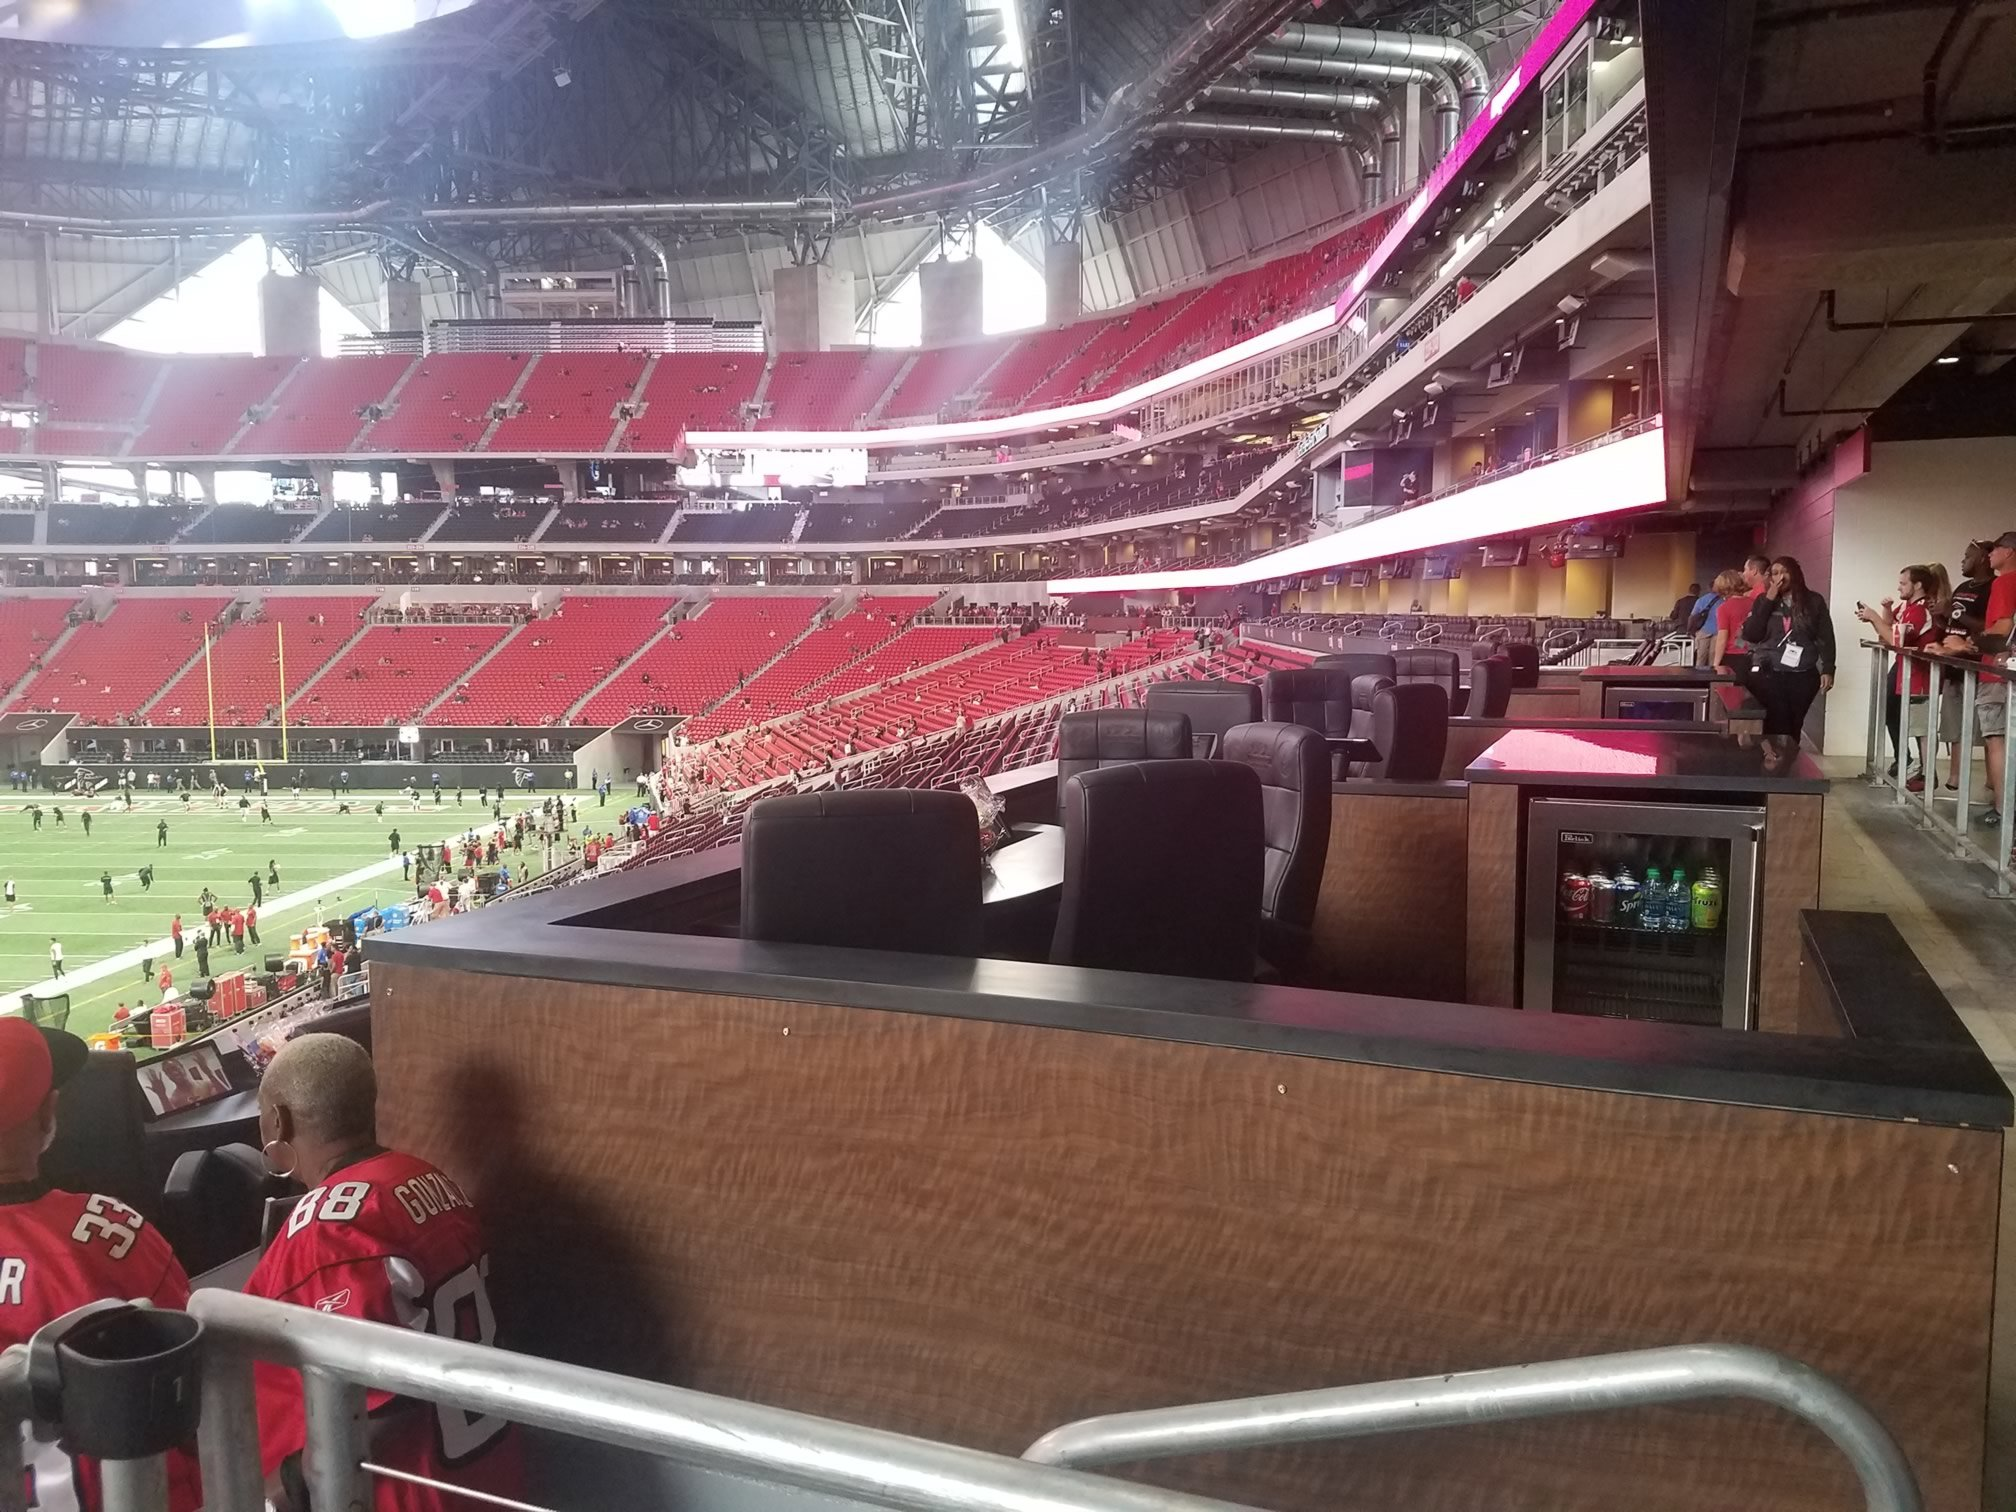 Mezzanine seats mercedes benz stadium mercedesbenz stadium for Mercedes benz stadium suite prices